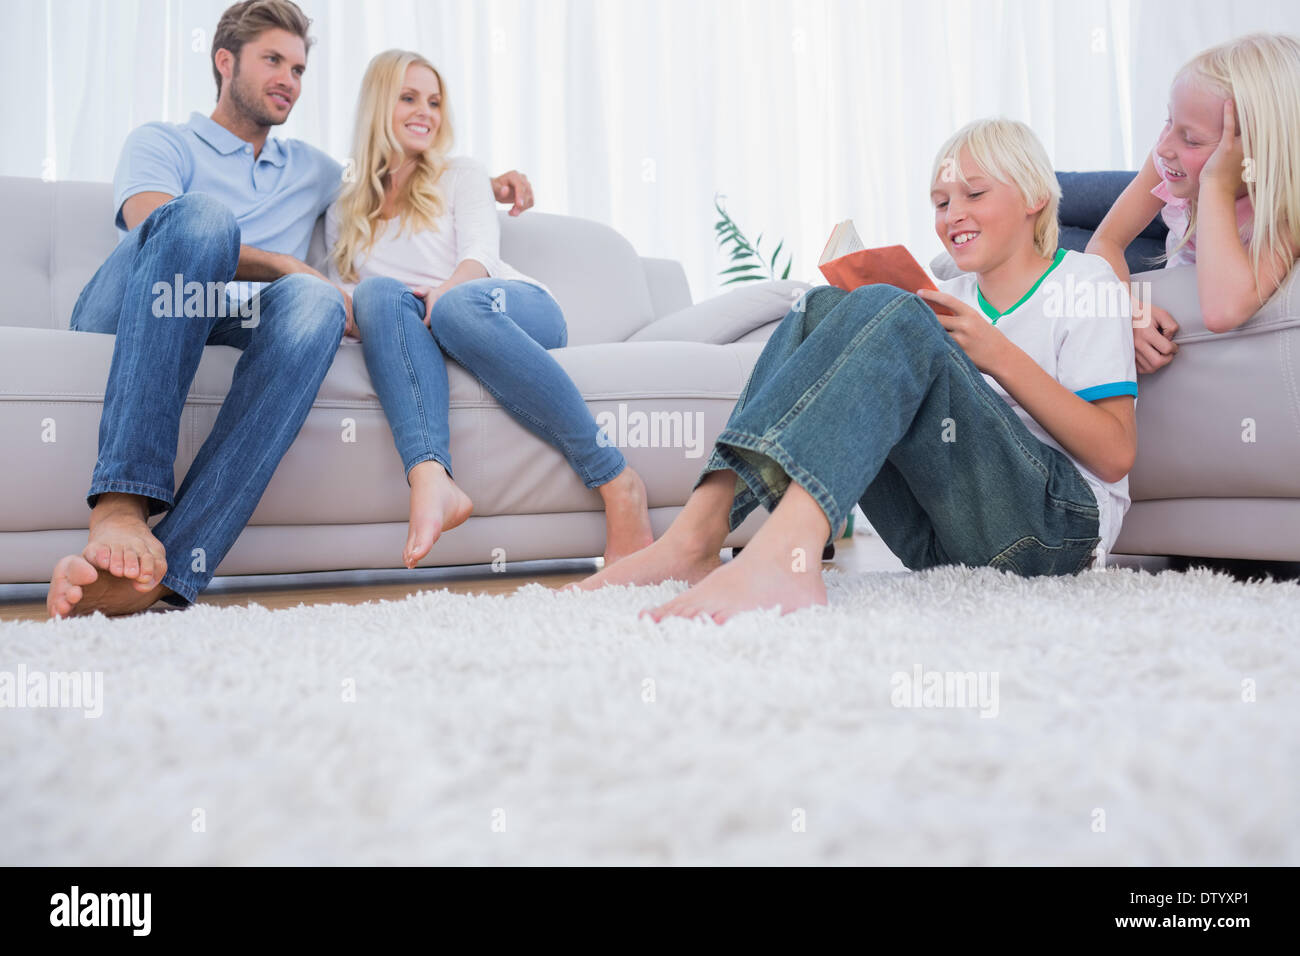 Family spending time together - Stock Image